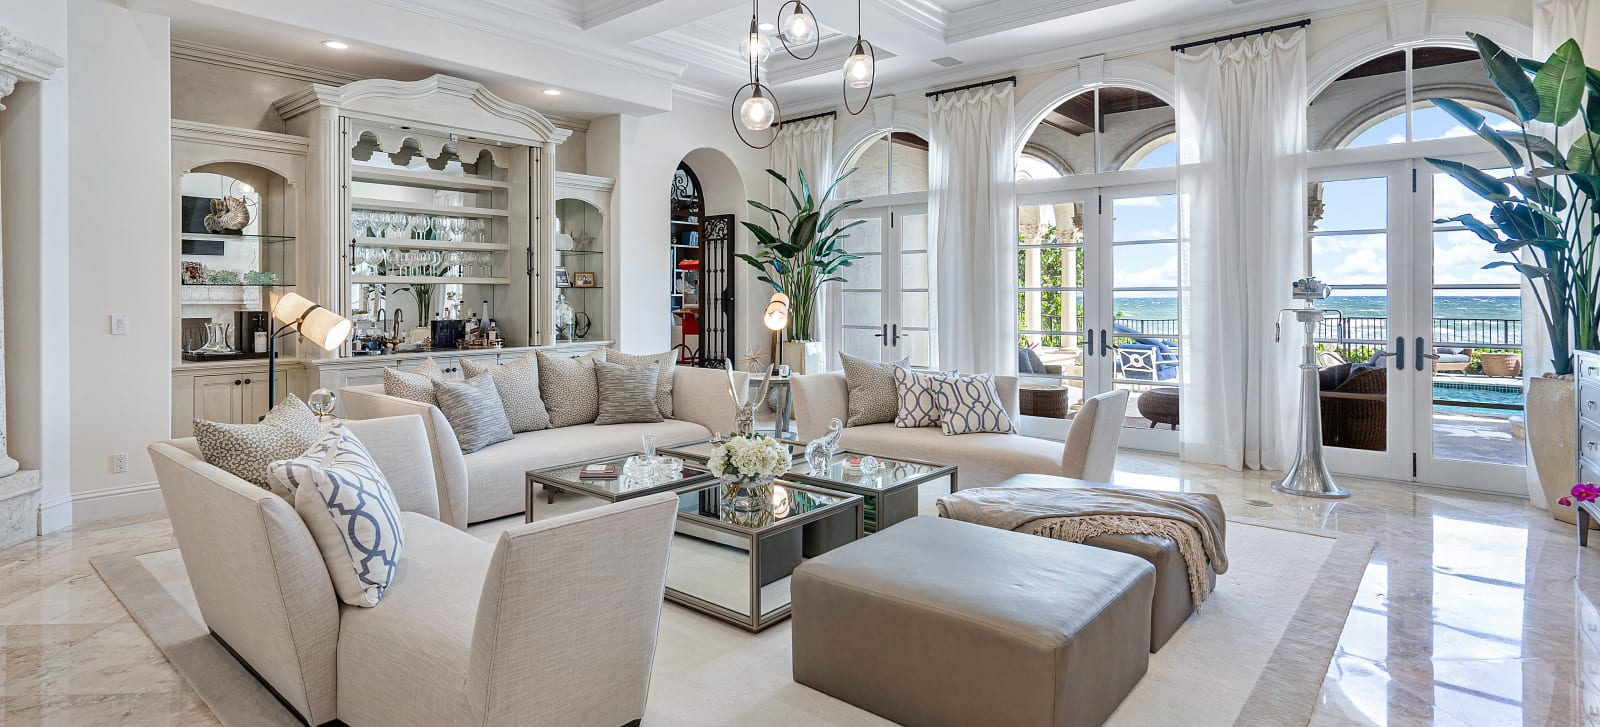 Find Luxury Real Estate in Gulf Stream | The Corcoran Group